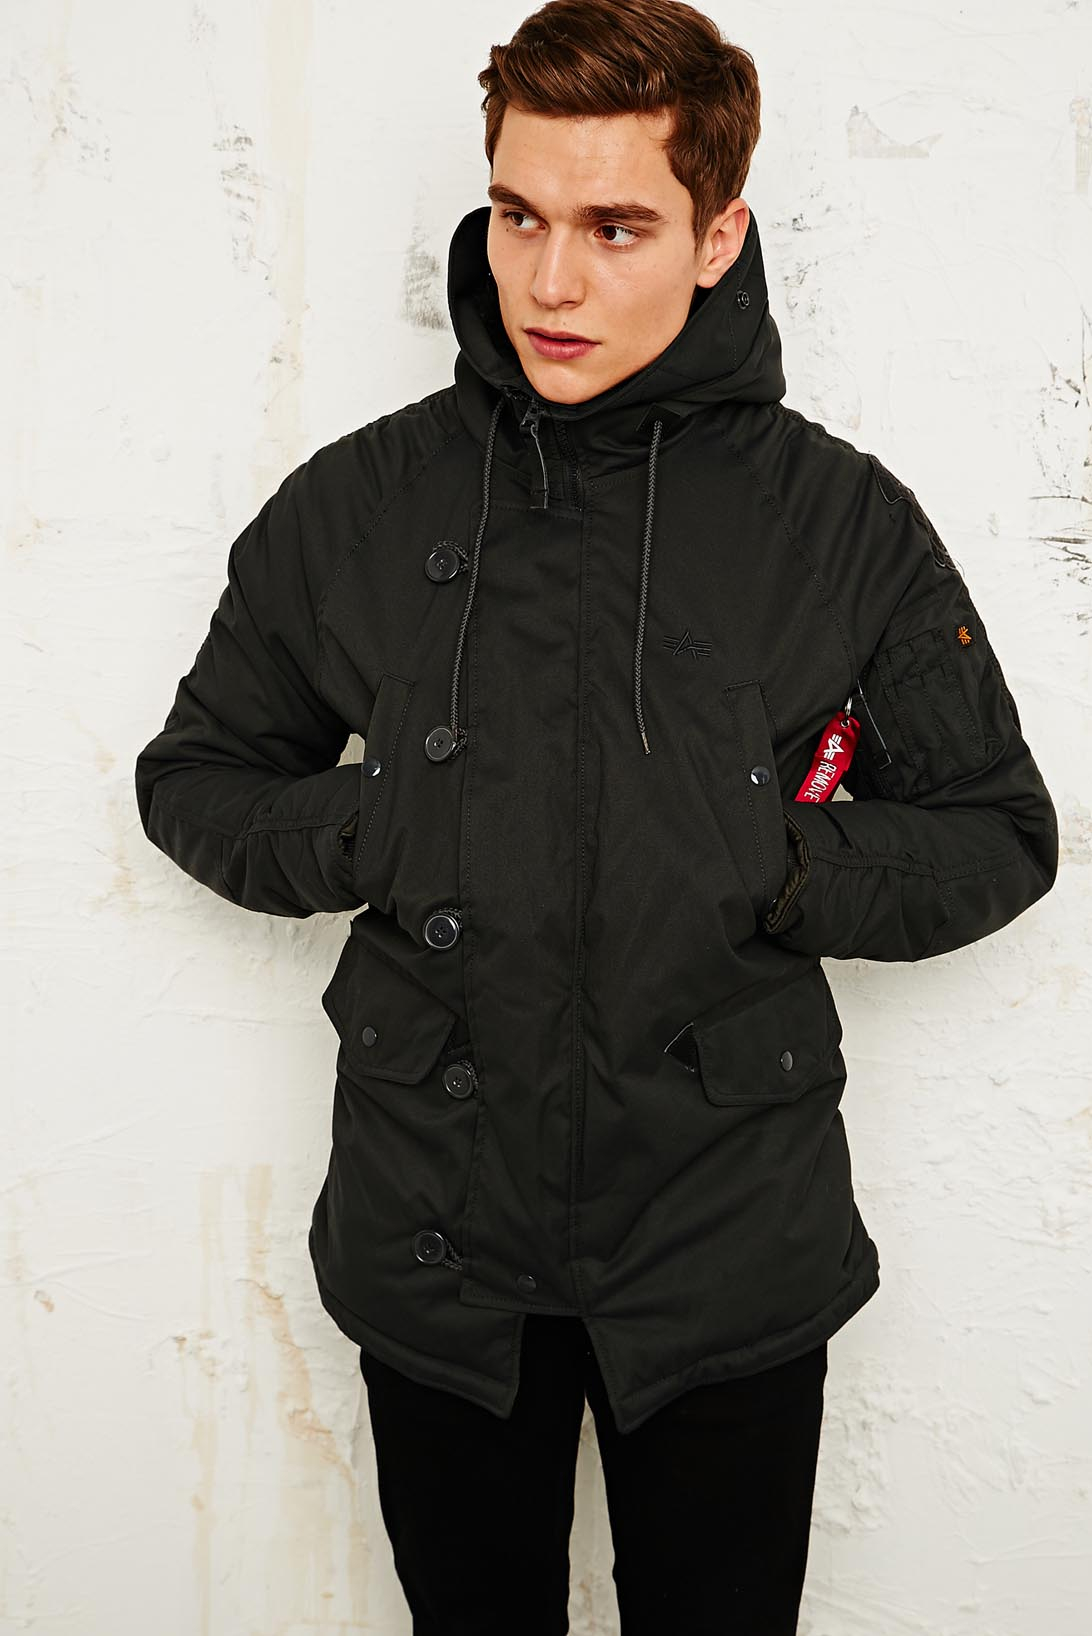 Urban Outfitters Alpha Industries Explorer Parka Jacket In